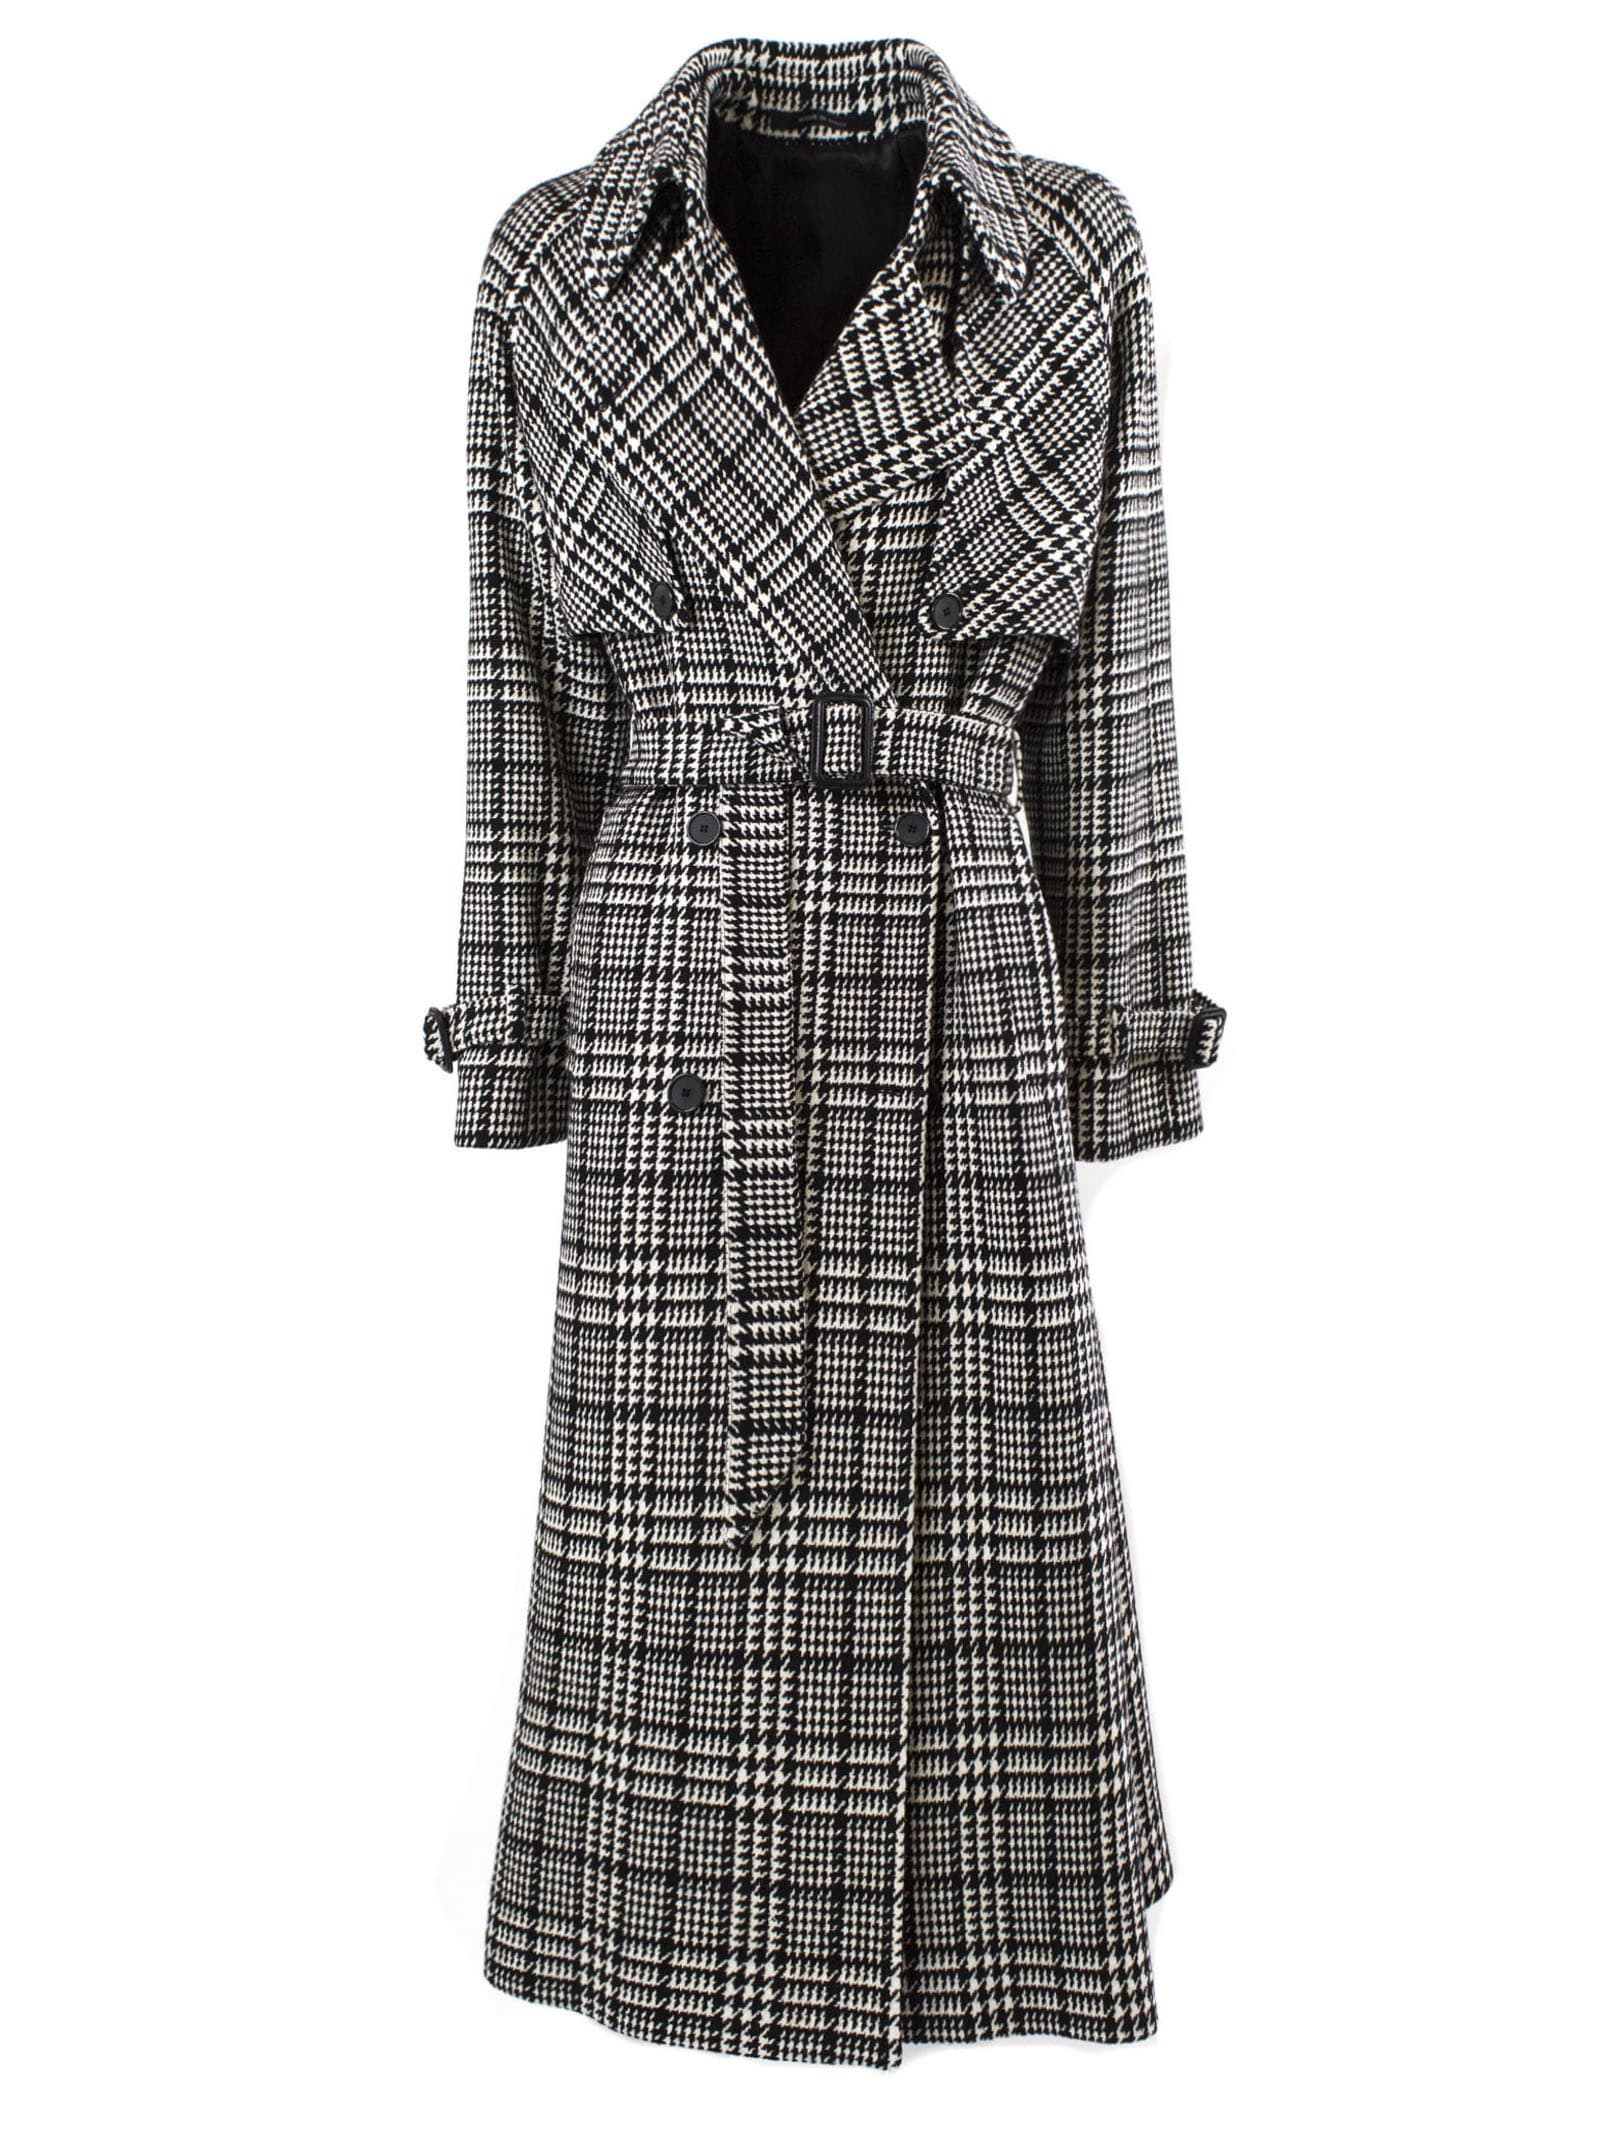 Tagliatore Black And White Wool-blend Trench Coat